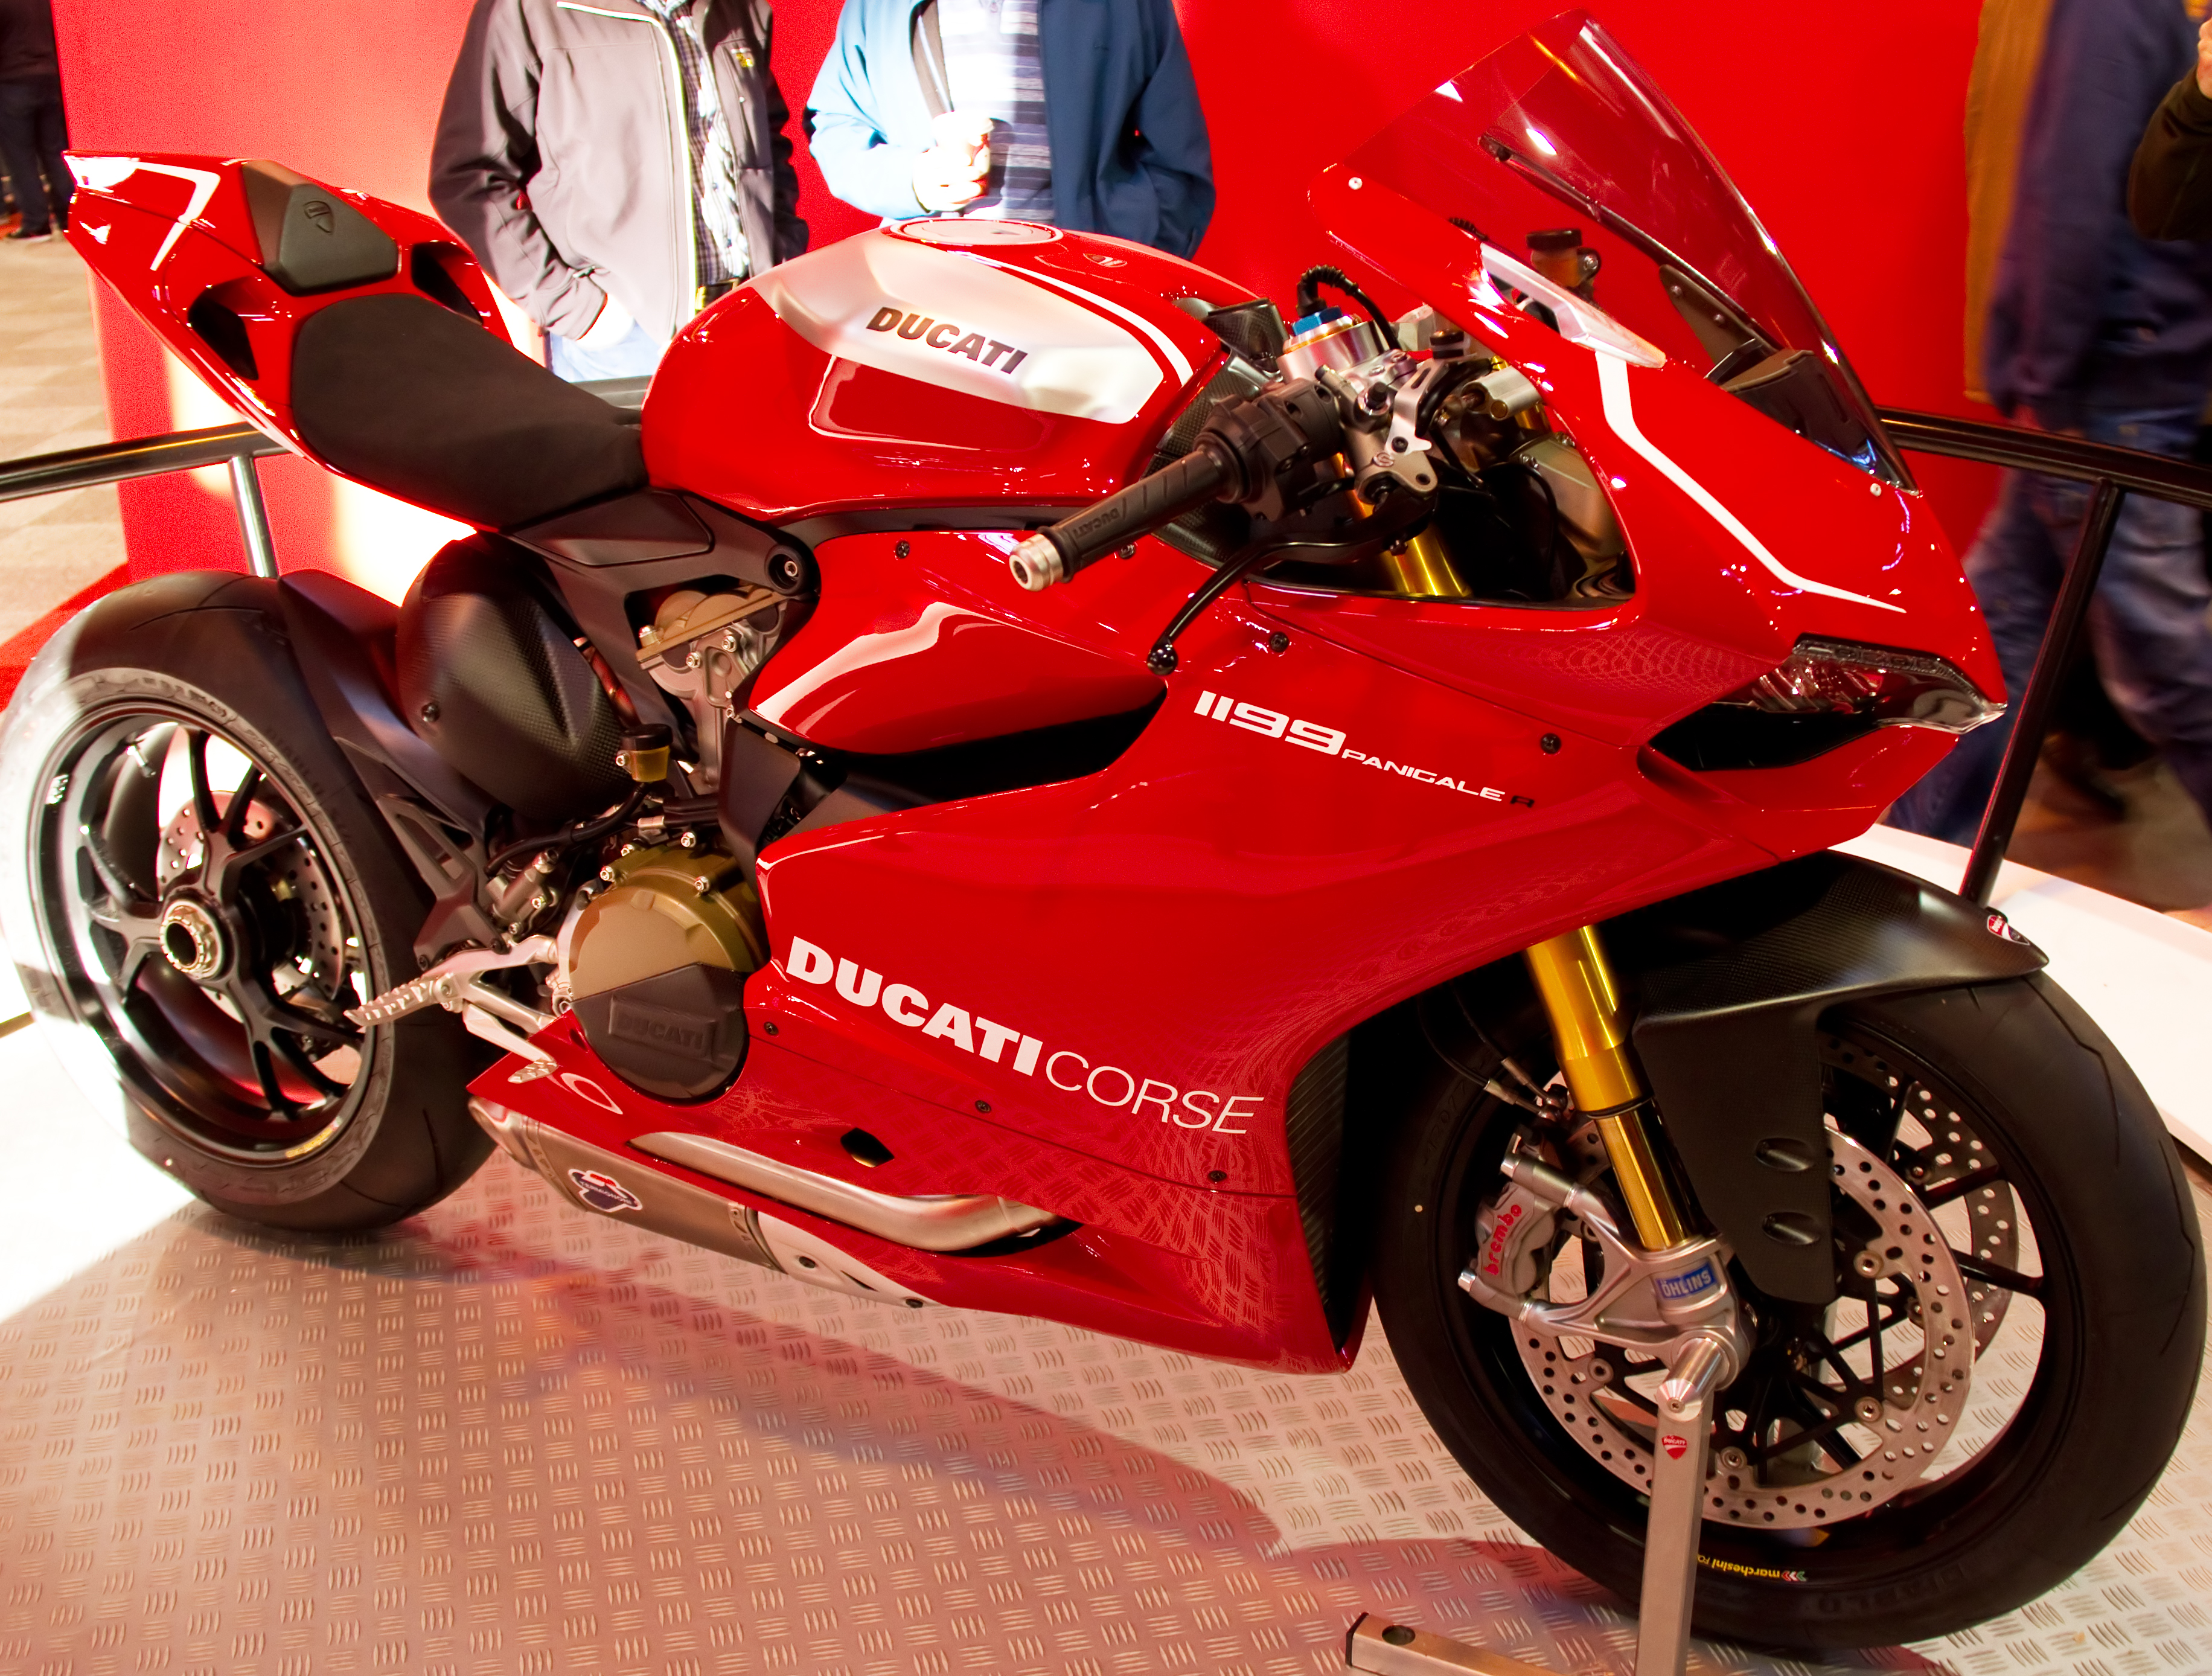 Ducati  Panigale Sc Project Exhaust